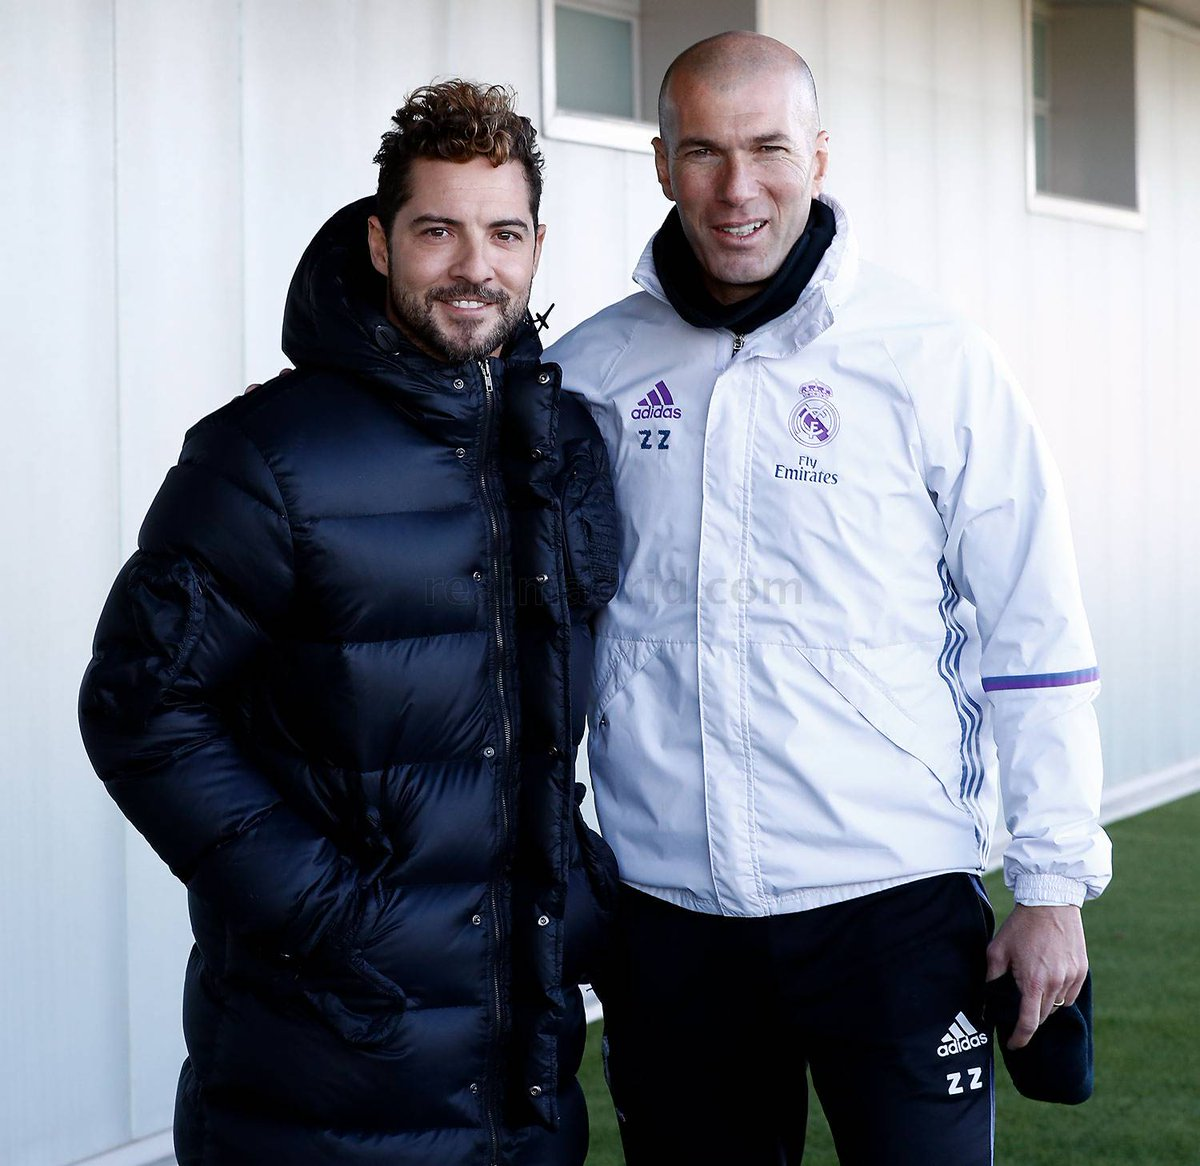 ¿Cuánto mide David Bisbal? - Altura real: 1,73 - Real height C2Zsy2iXgAAcCCS